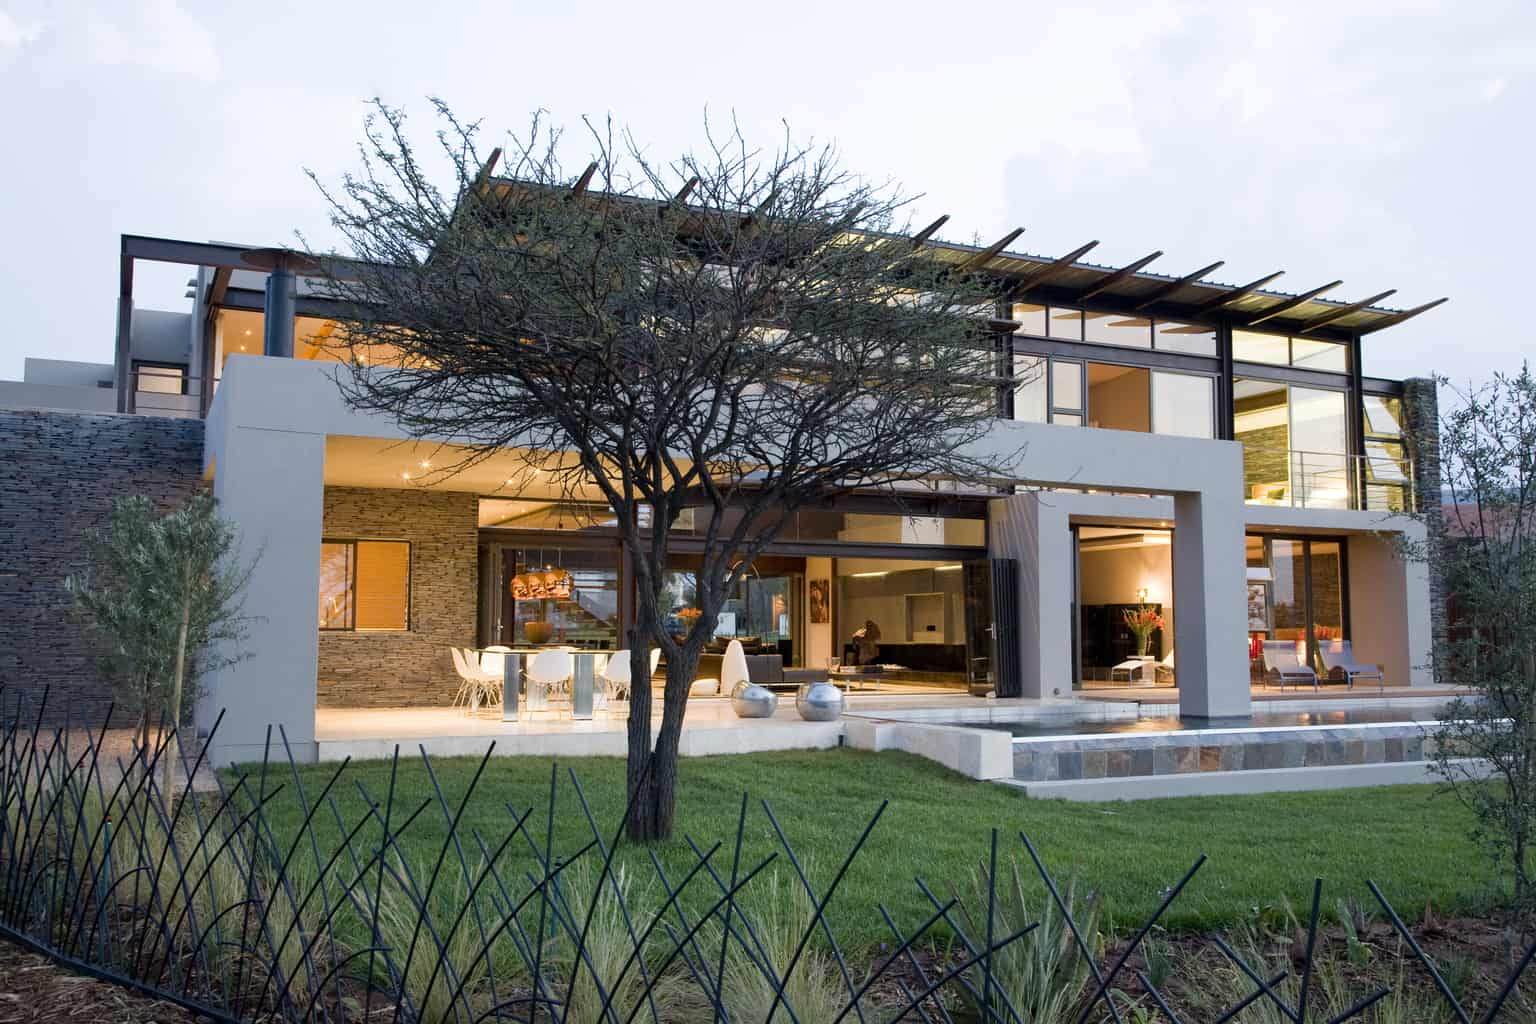 Johannesburg architecture made of rock, steel & wood